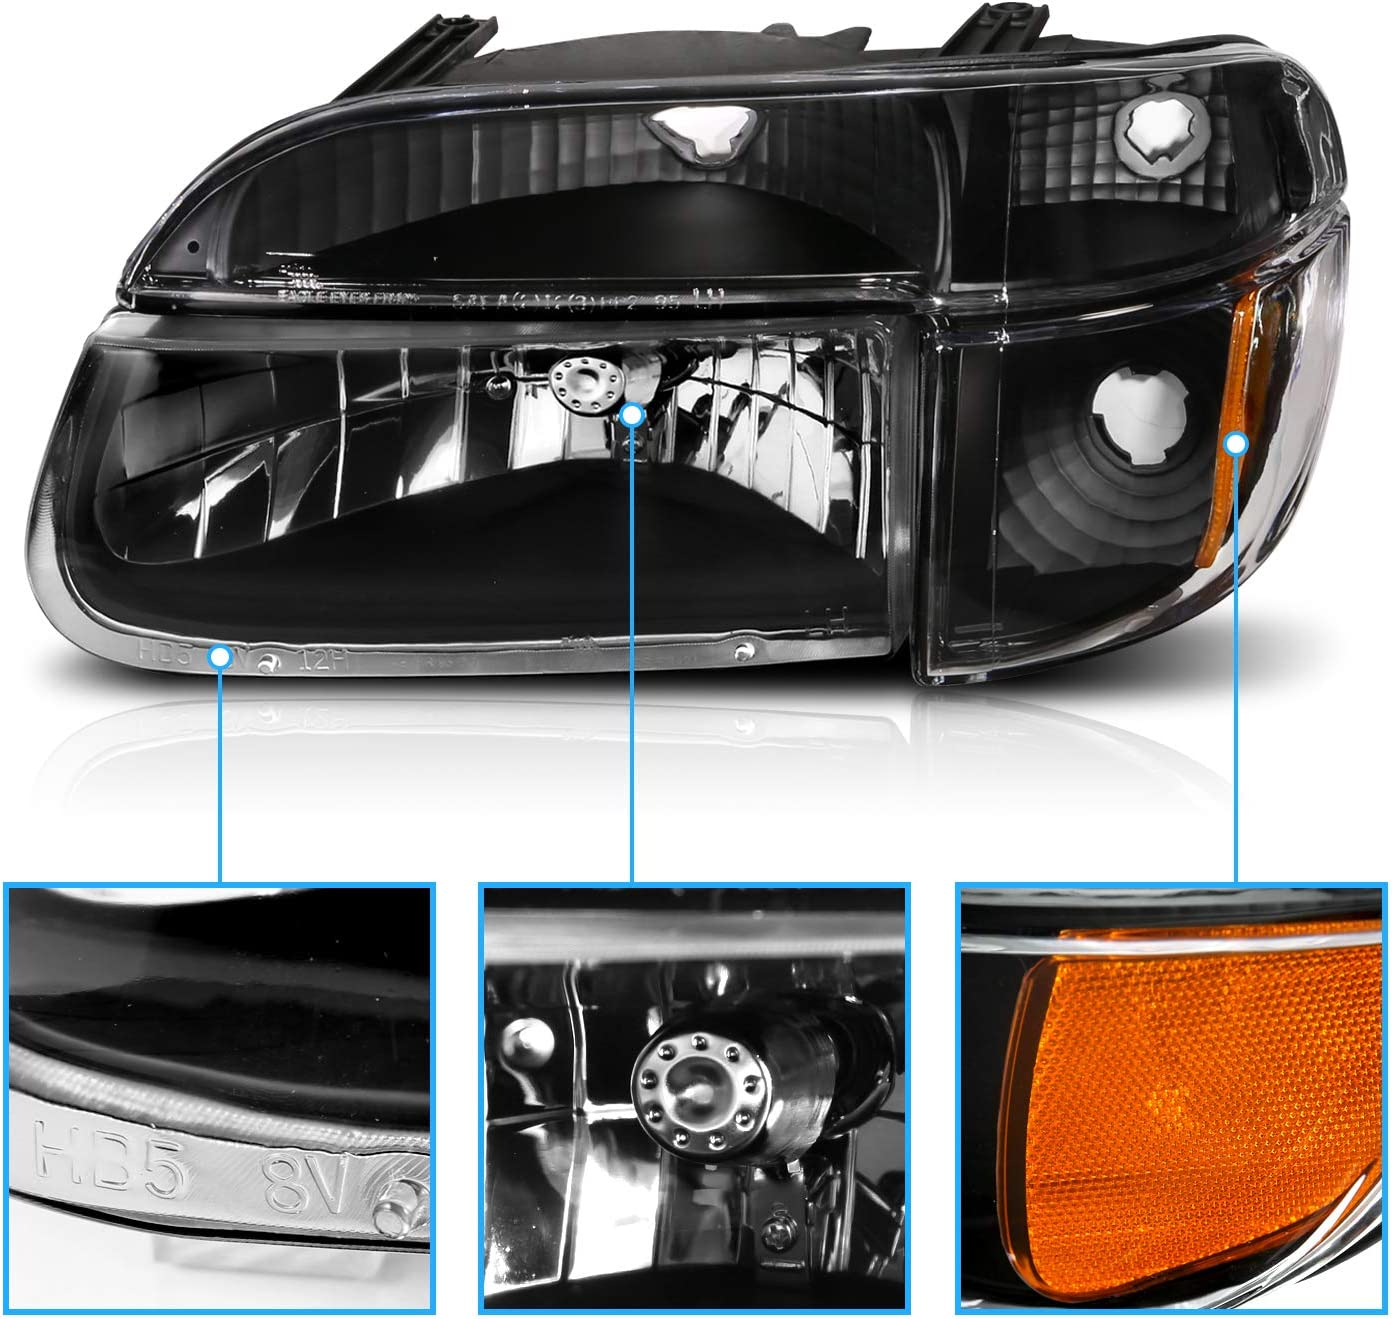 -Chrome 100W Halogen 2010 Nissan PATHFINDER Post mount spotlight 6 inch Driver side WITH install kit